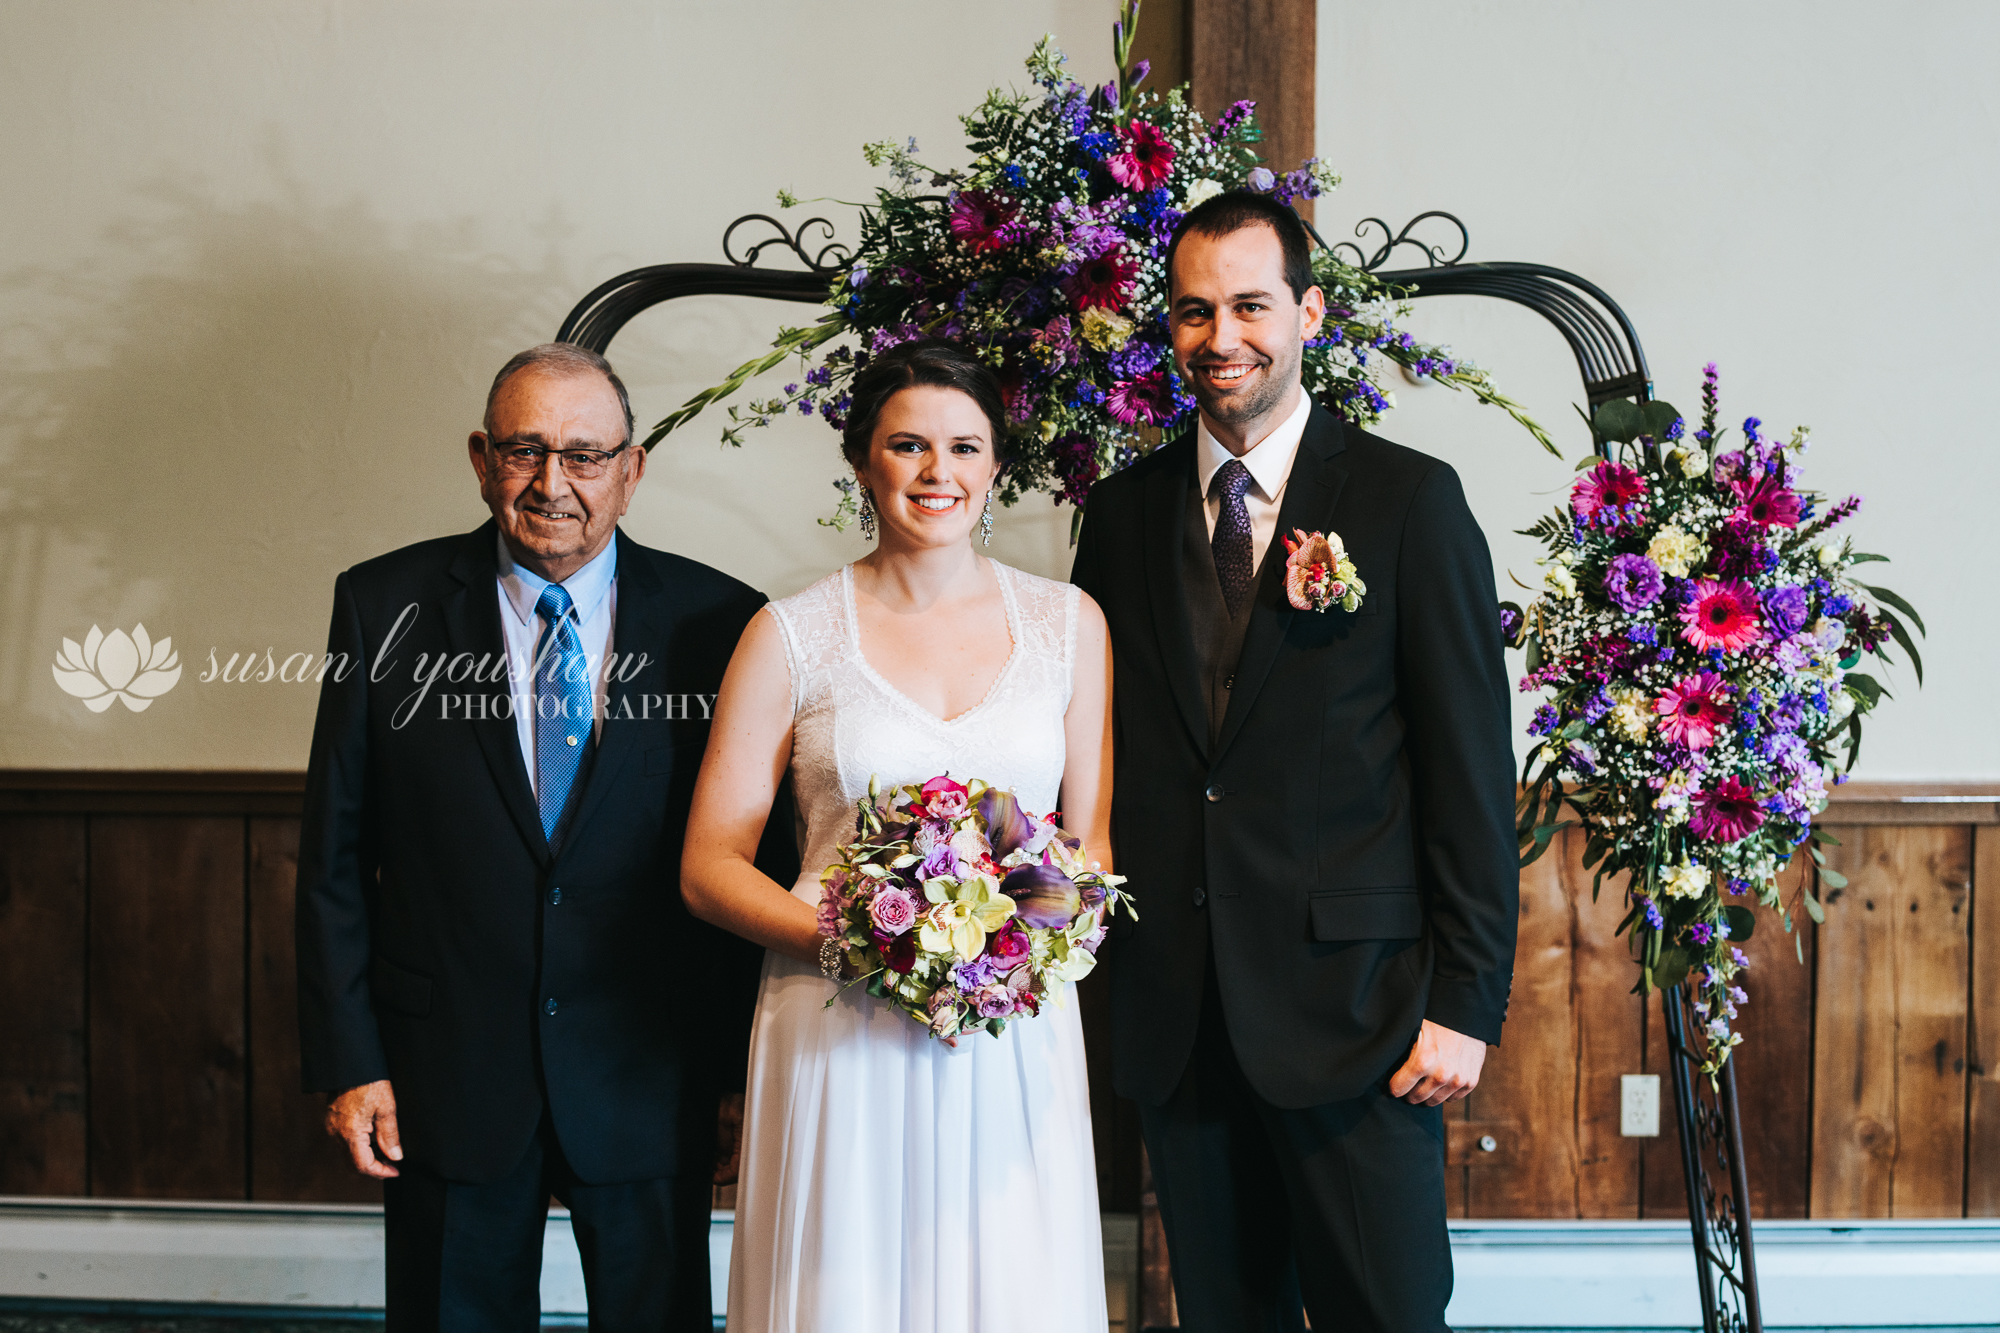 Adena and  Erik Wedding 05-17-2019 SLY Photography-56.jpg